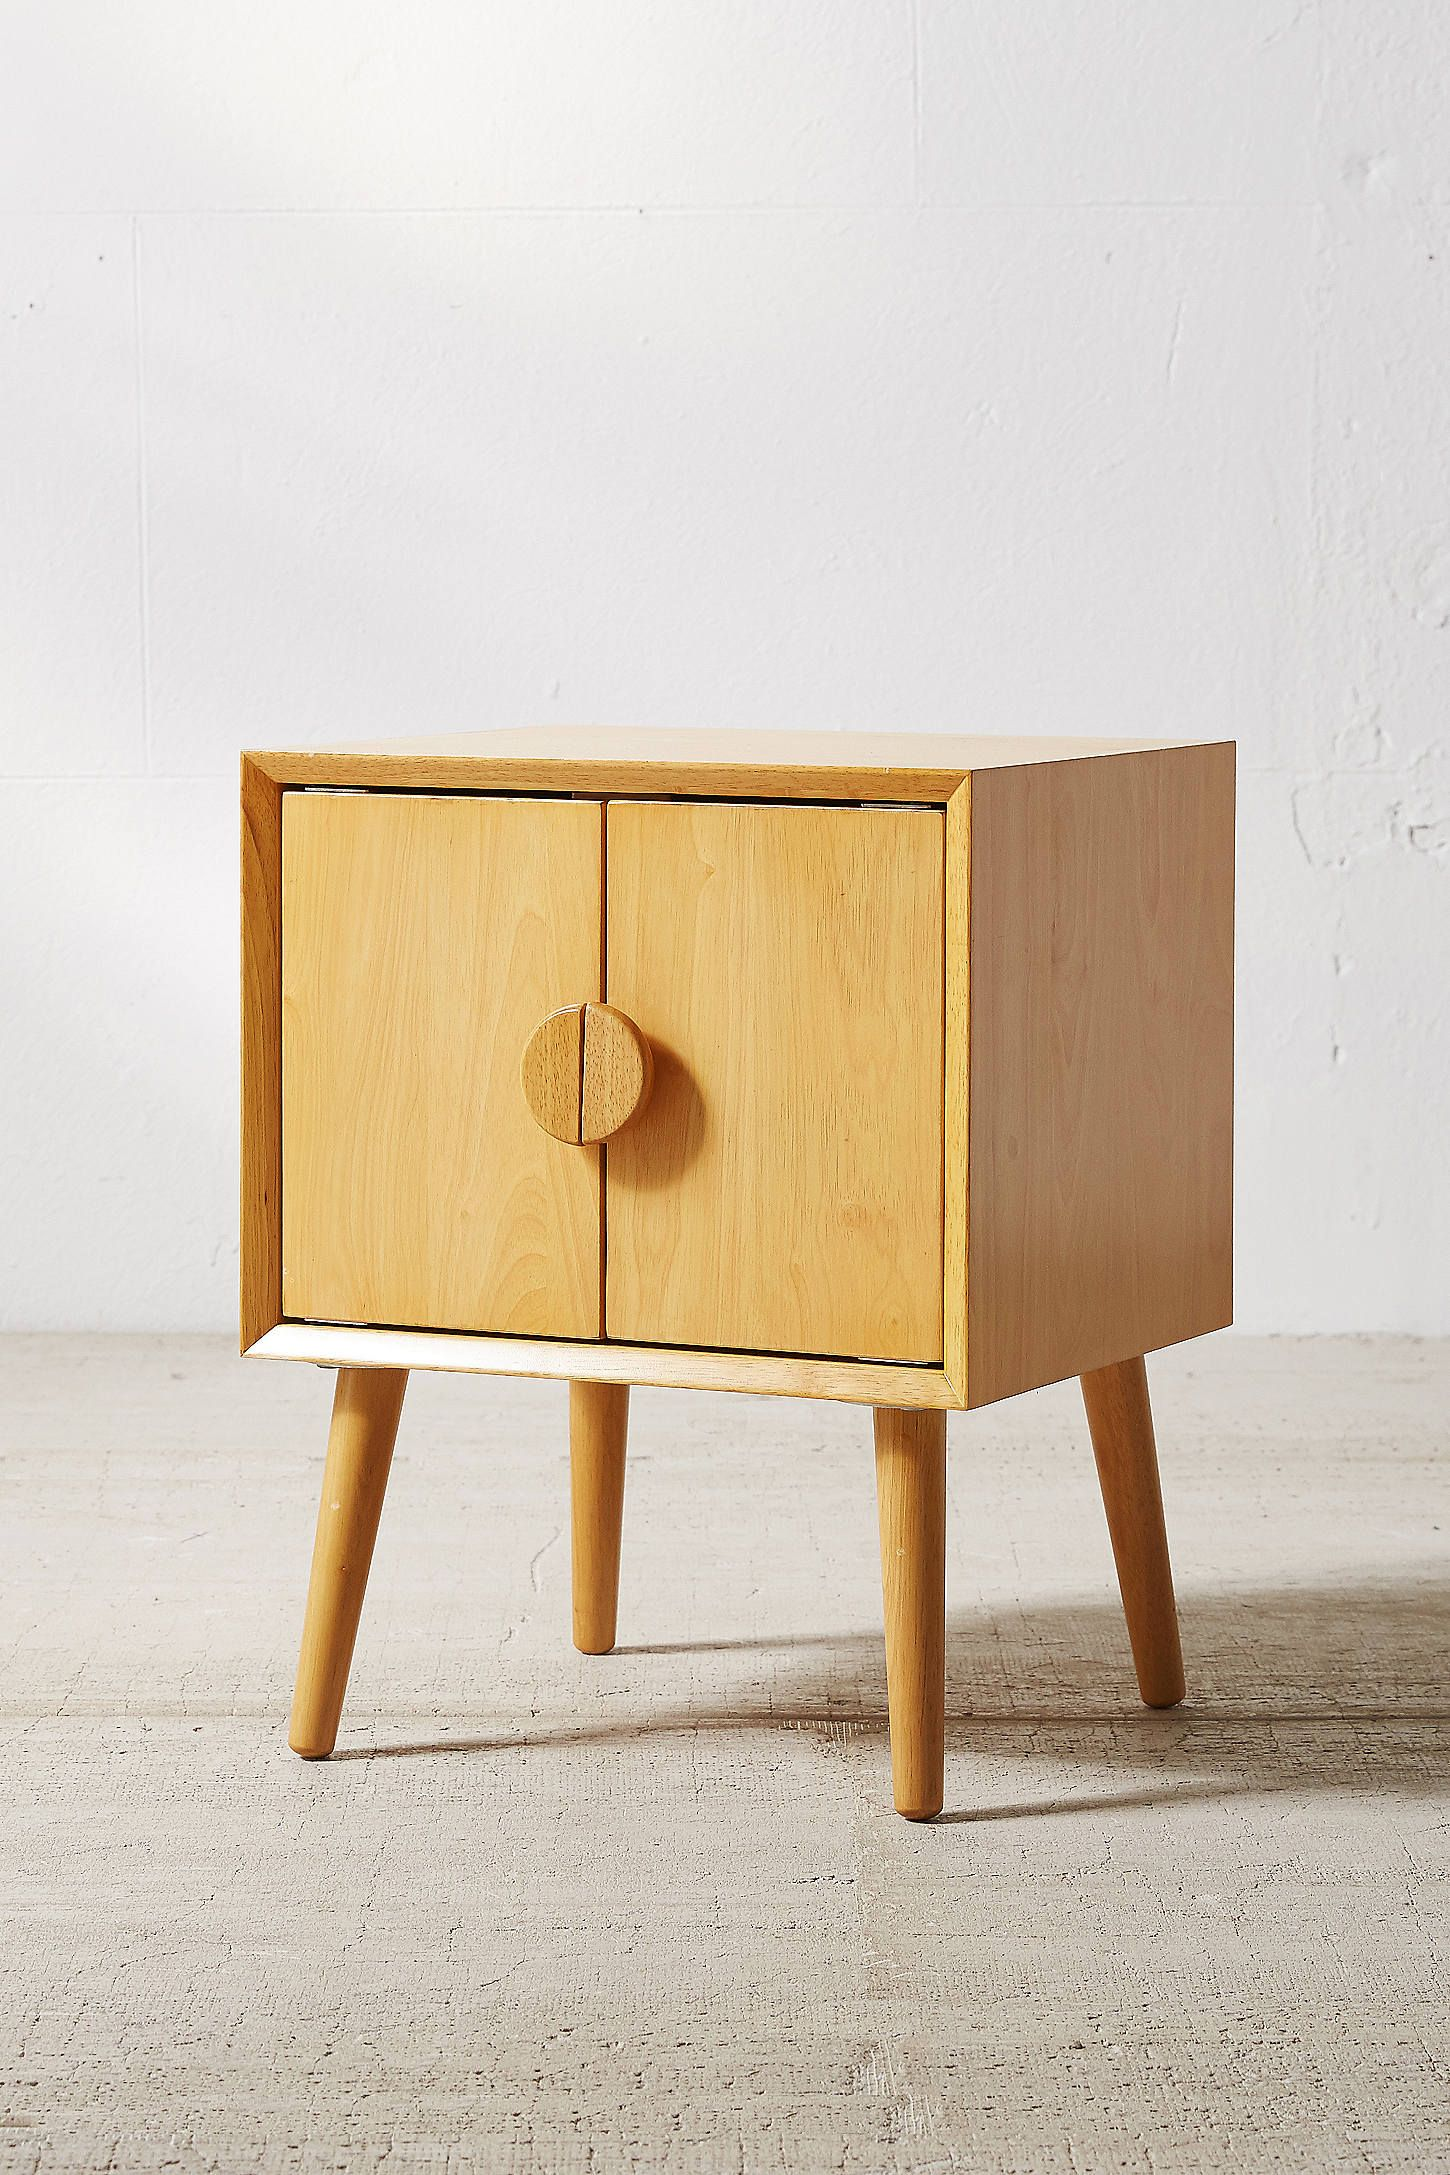 livia nightstand furniture and tachuri accent table target urban outfitters today carry all the latest styles colors brands for you choose from right here white coffee gold lamp